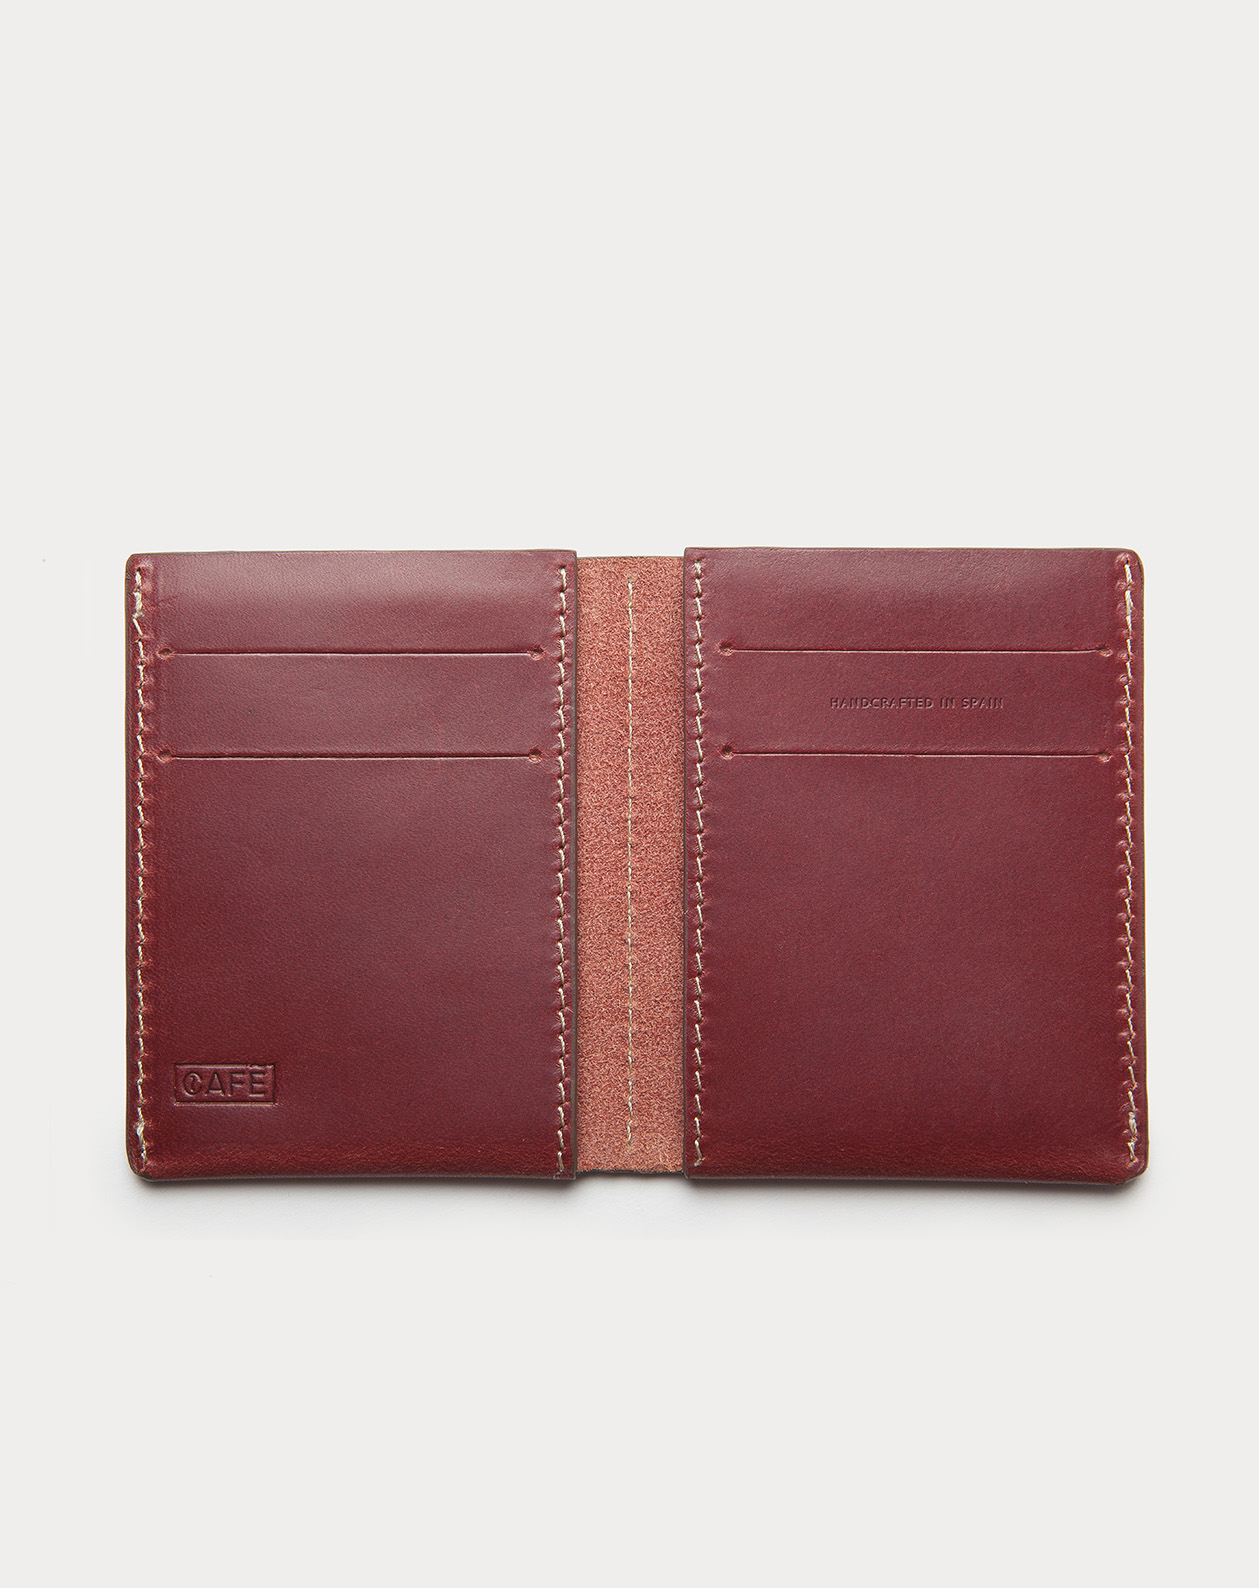 Ultra Slim Leather Wallet Jamaica Berry 2